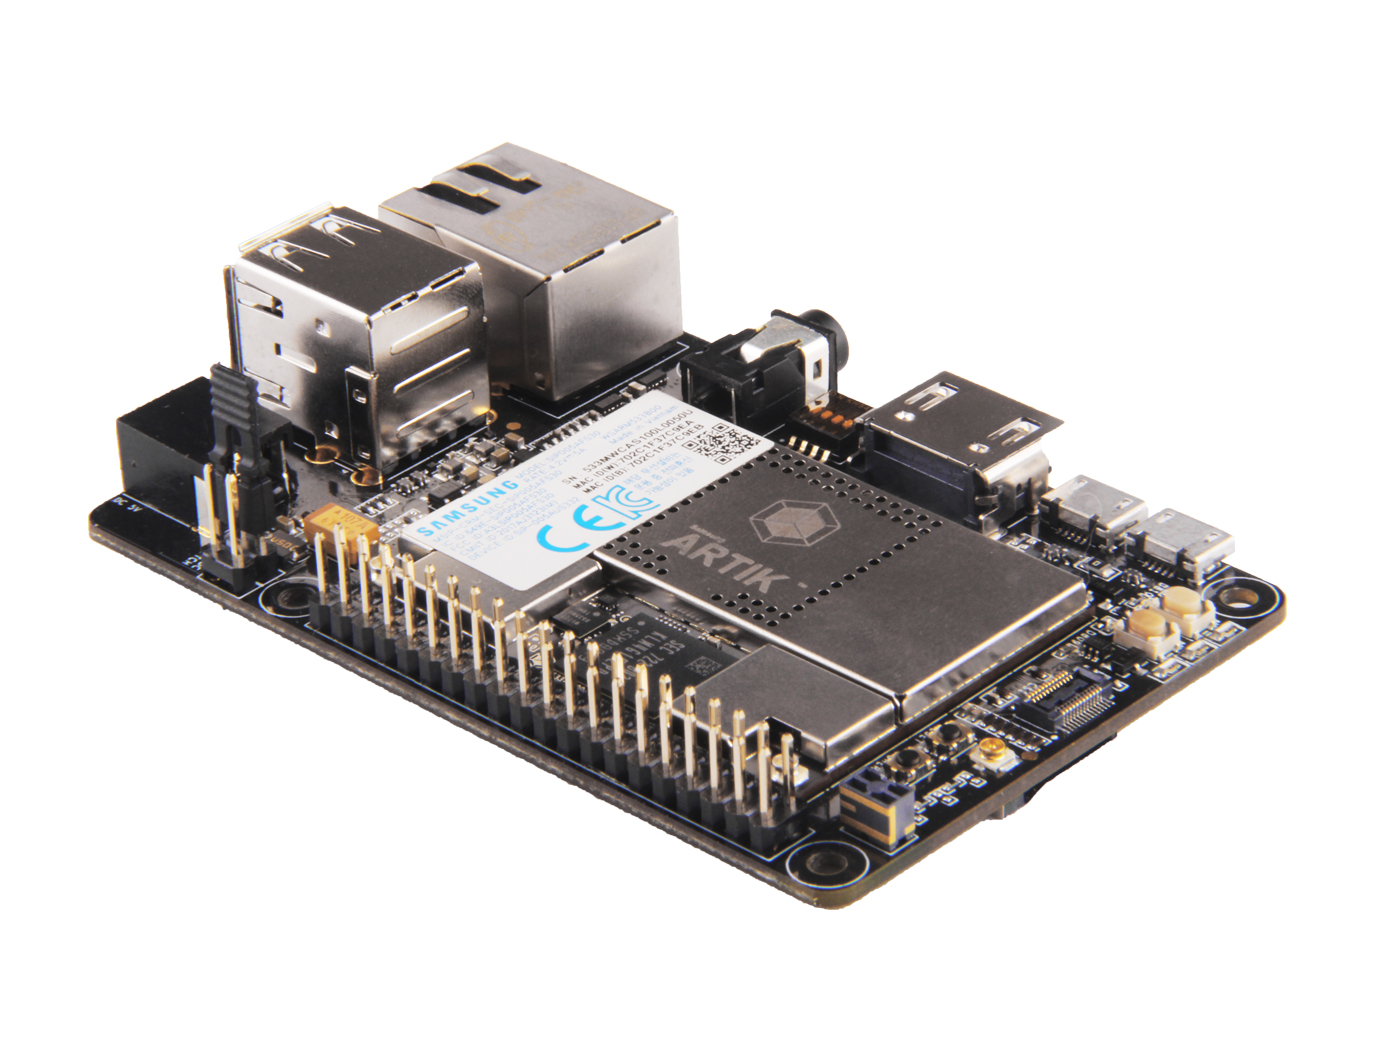 Seeed Launches Engleye-530s, A Samsung ARTIK Powered Board in a Raspberry Footprint